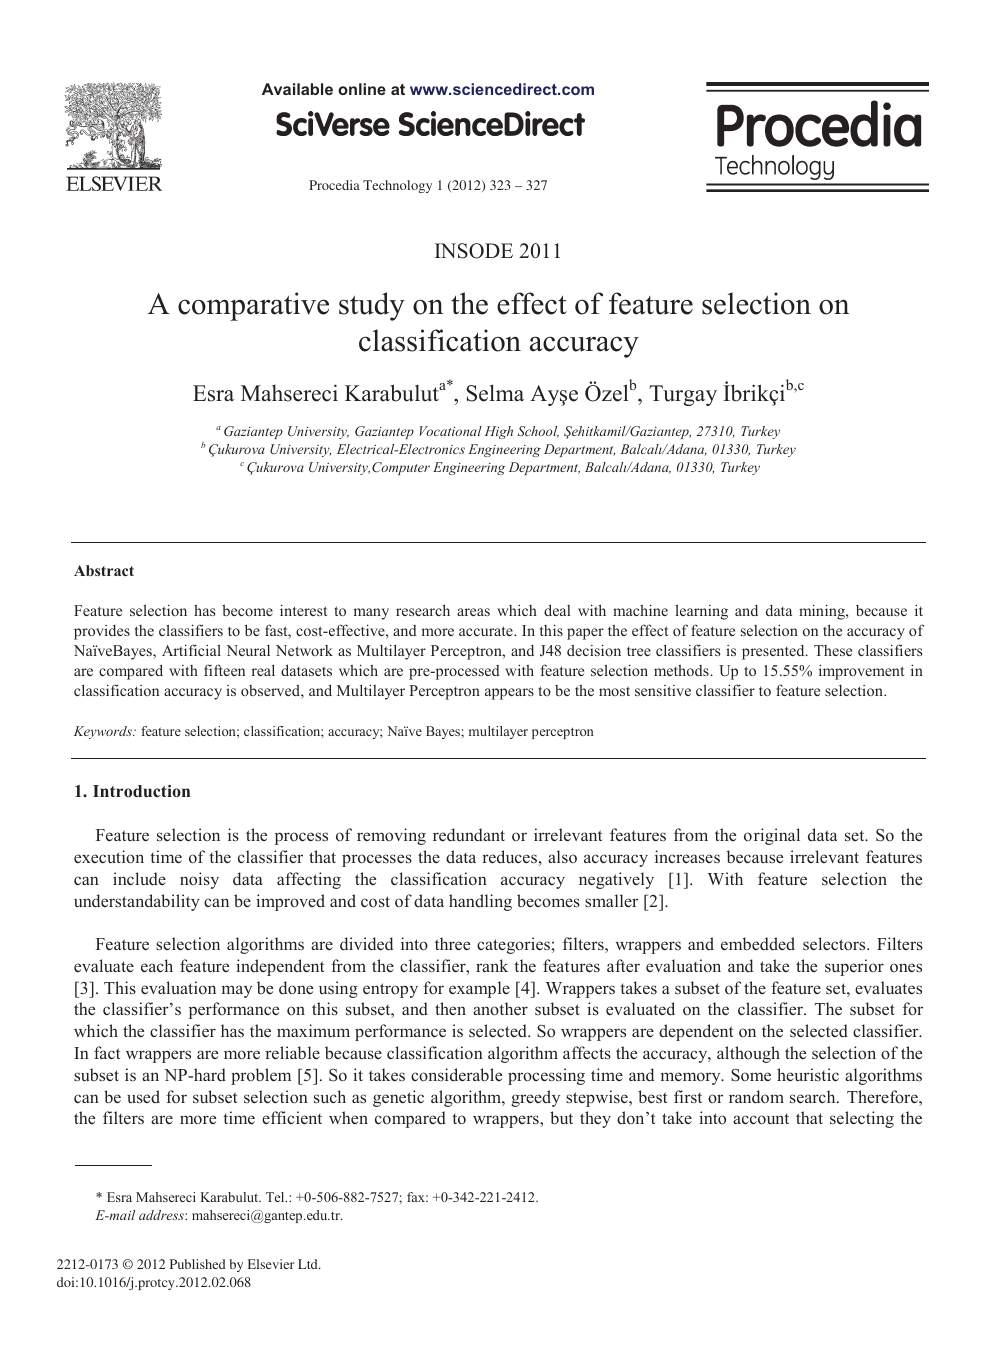 A comparative study on the effect of feature selection on